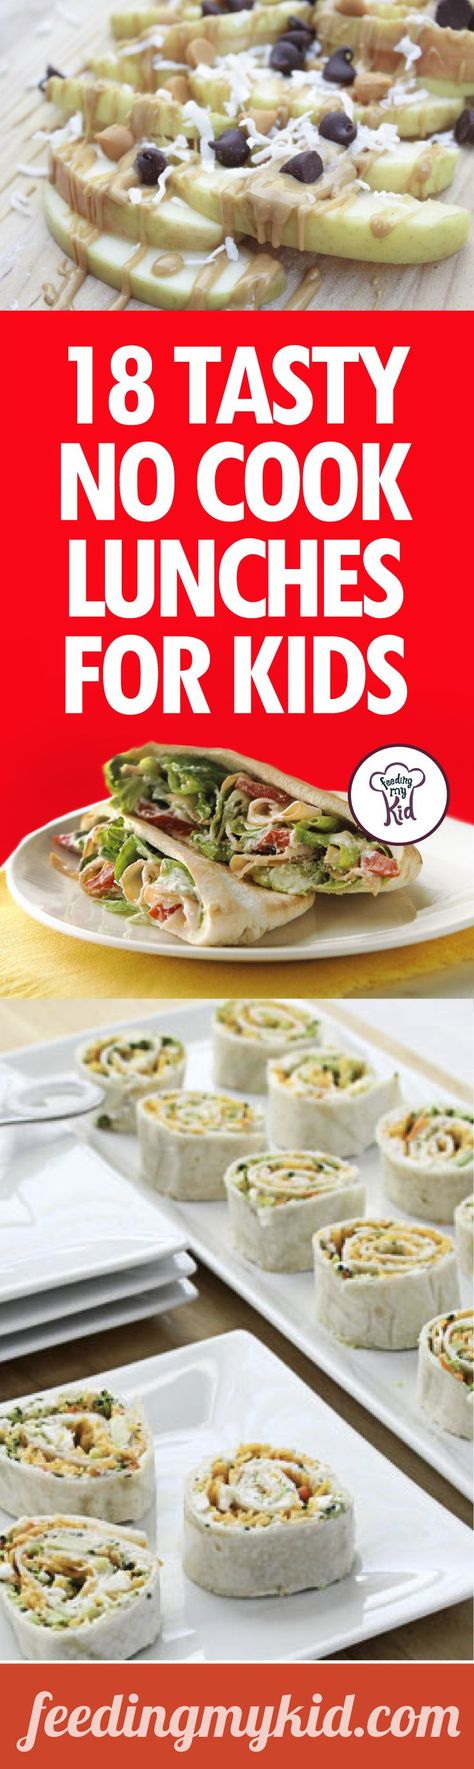 No Cook Lunches For Kids